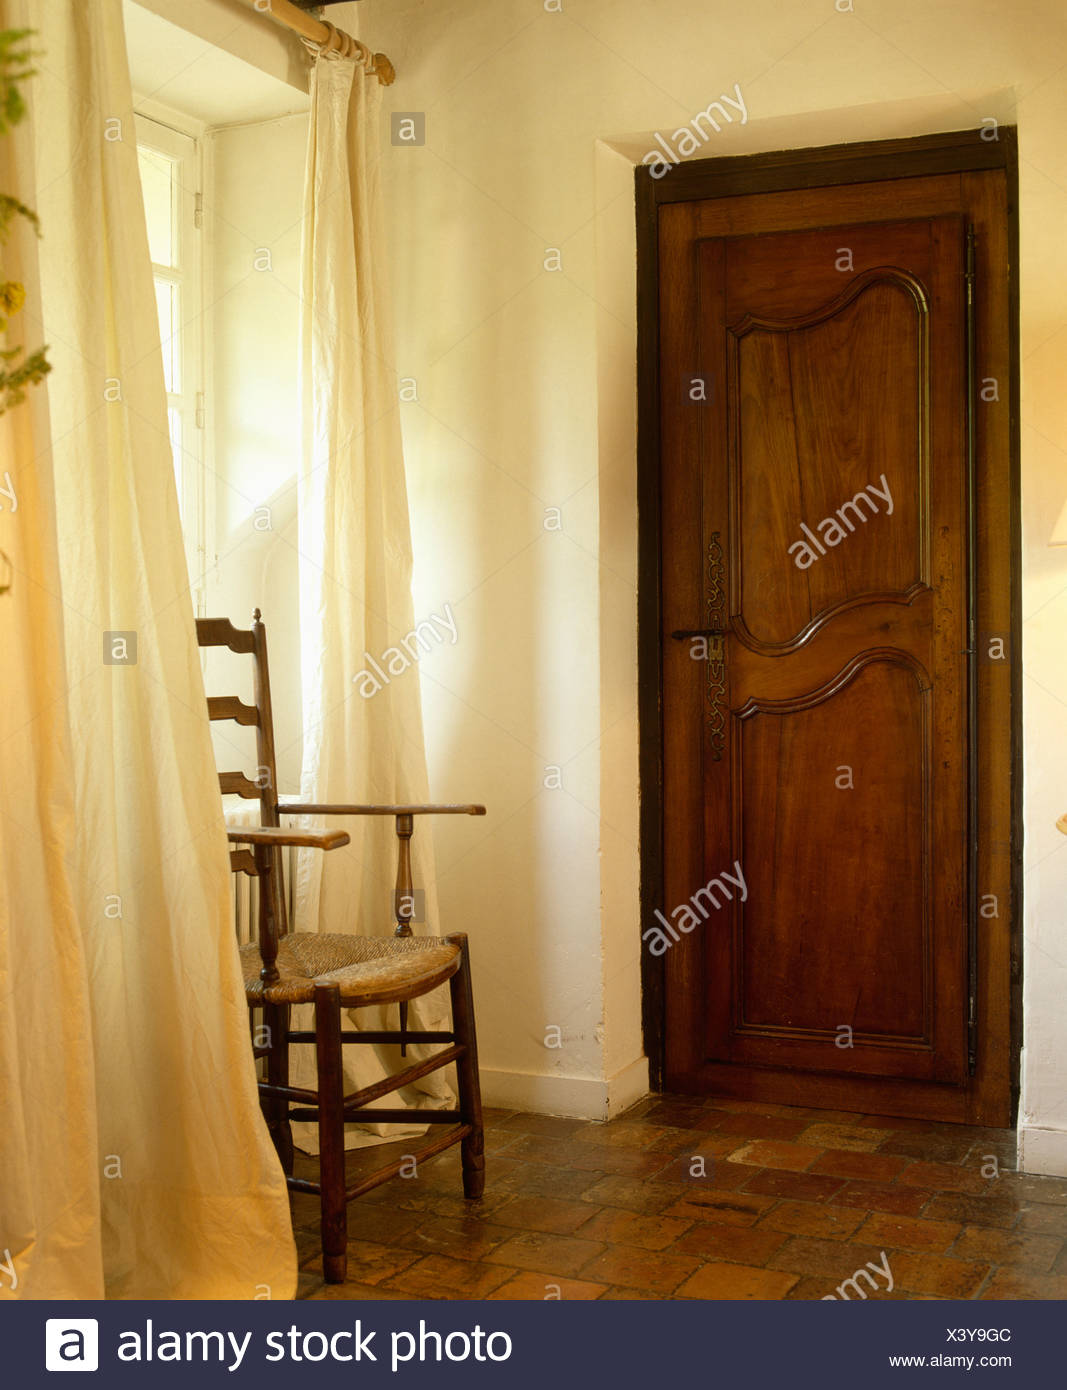 Antique Rush Seated Ladderback Chair In Front Of Window With White Curtains In Small Hall With Carved Wooden Door Stock Photo Alamy